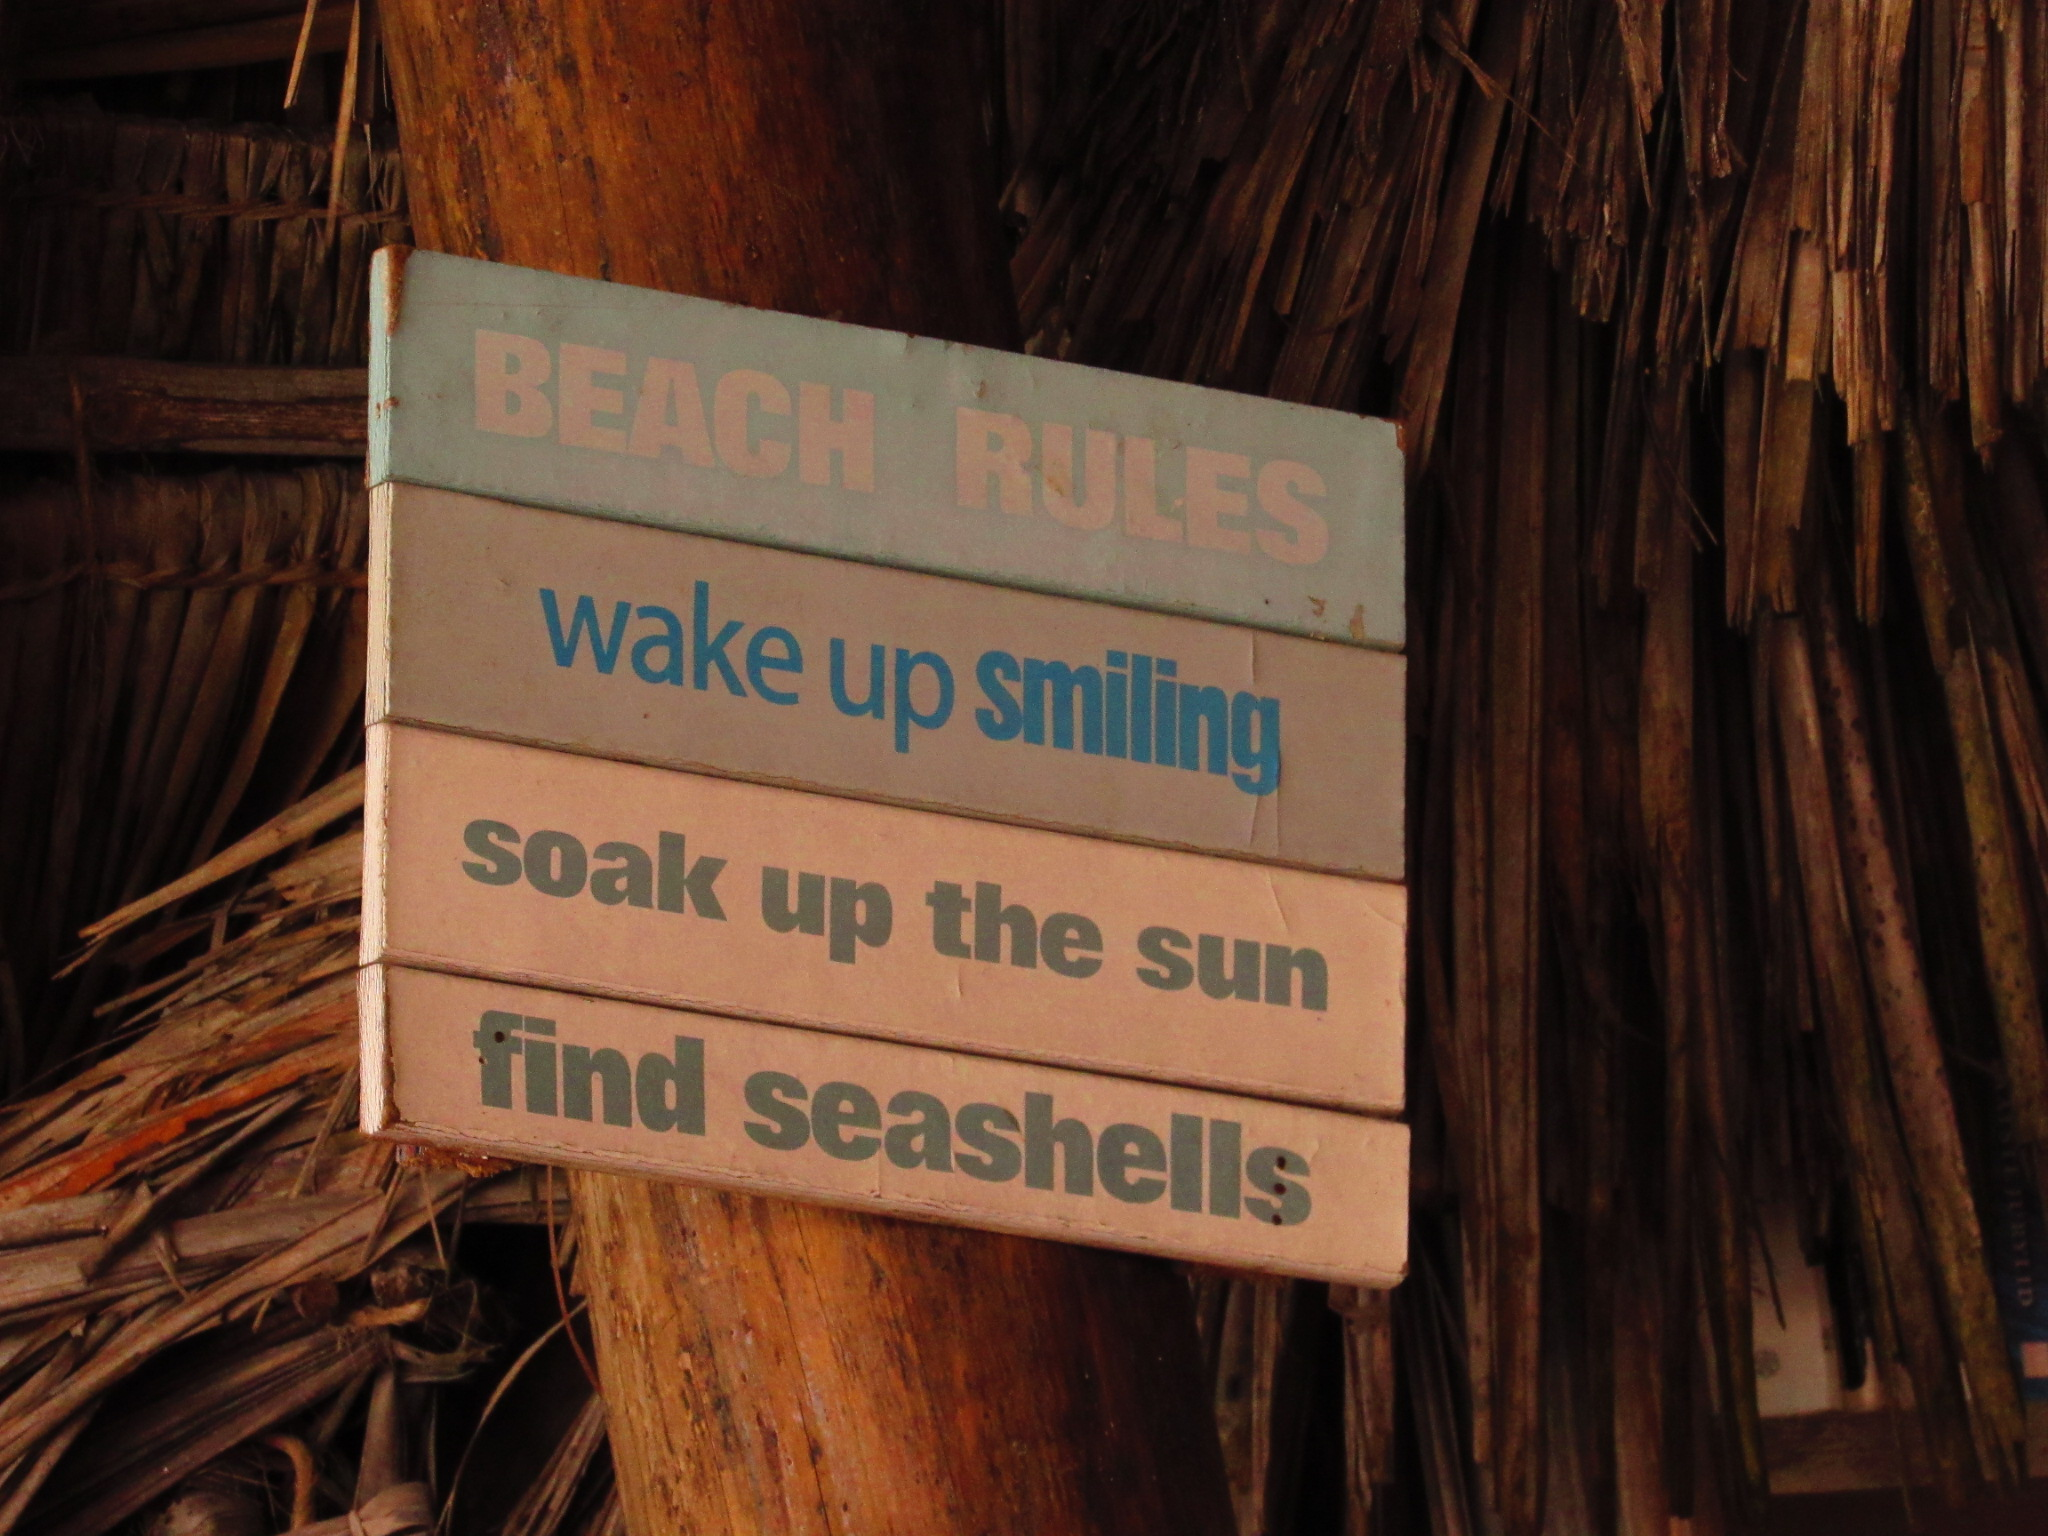 Beach rules: Wake up smiling; soak up the sun; find seashells